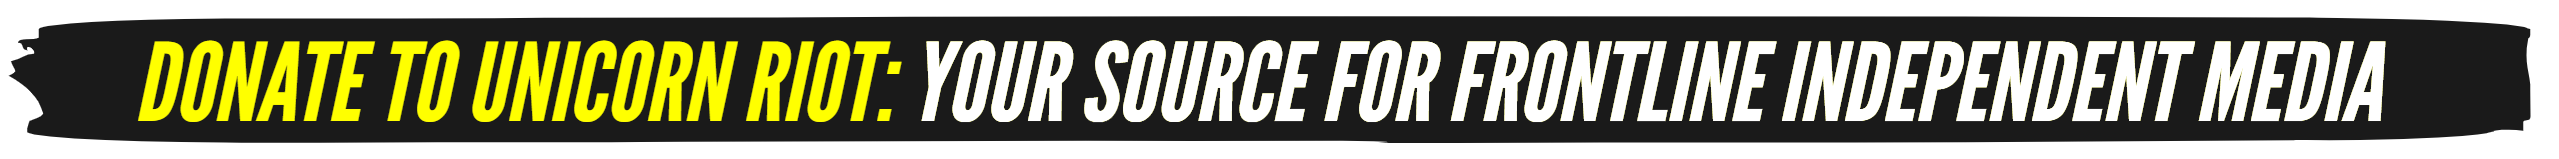 Donate to Unicorn Riot: Your source for frontline independent media